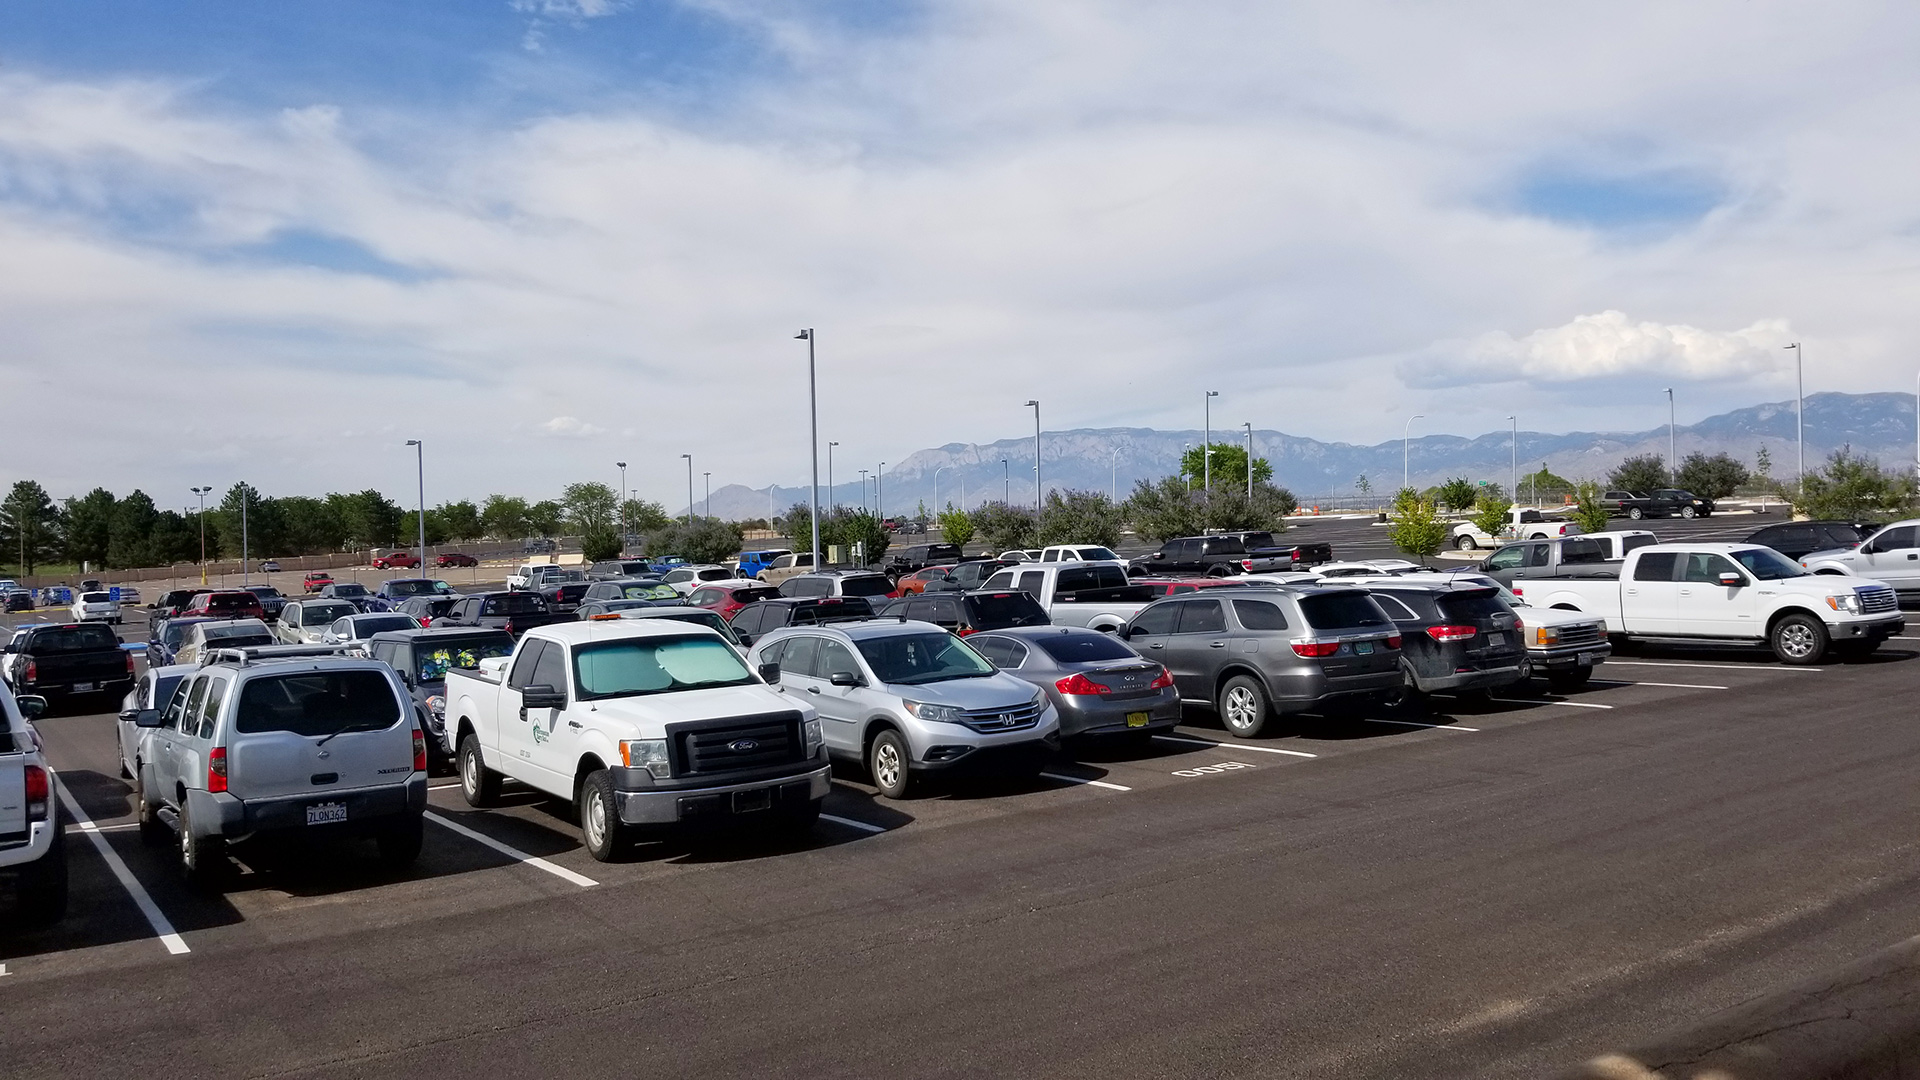 ABQ Sunport - Parking Lot - Basic Economy